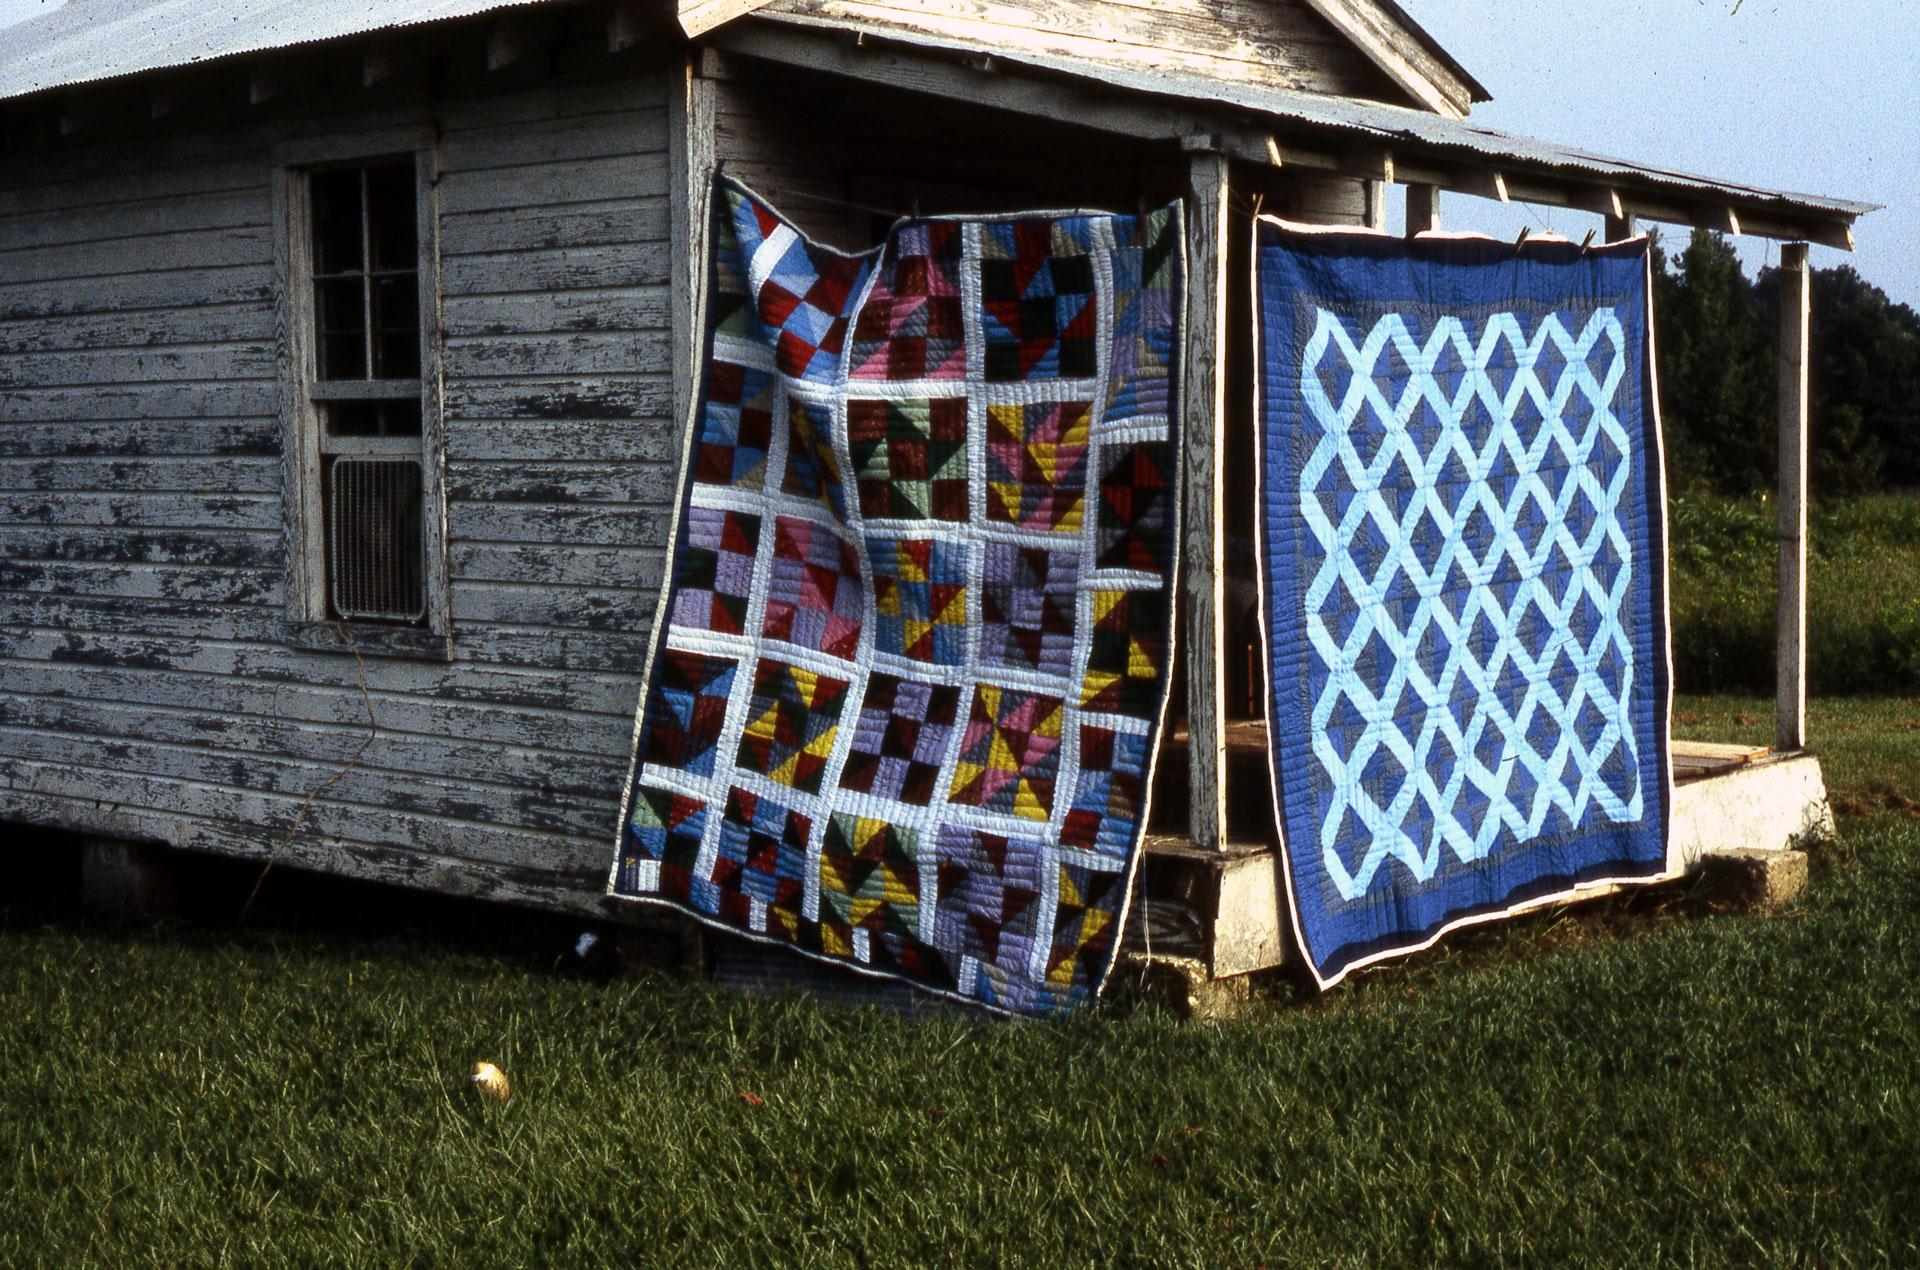 QUILTS SEWN BY MCC MISSISSIPPI CULTURAL CROSSROADS QUILTERS